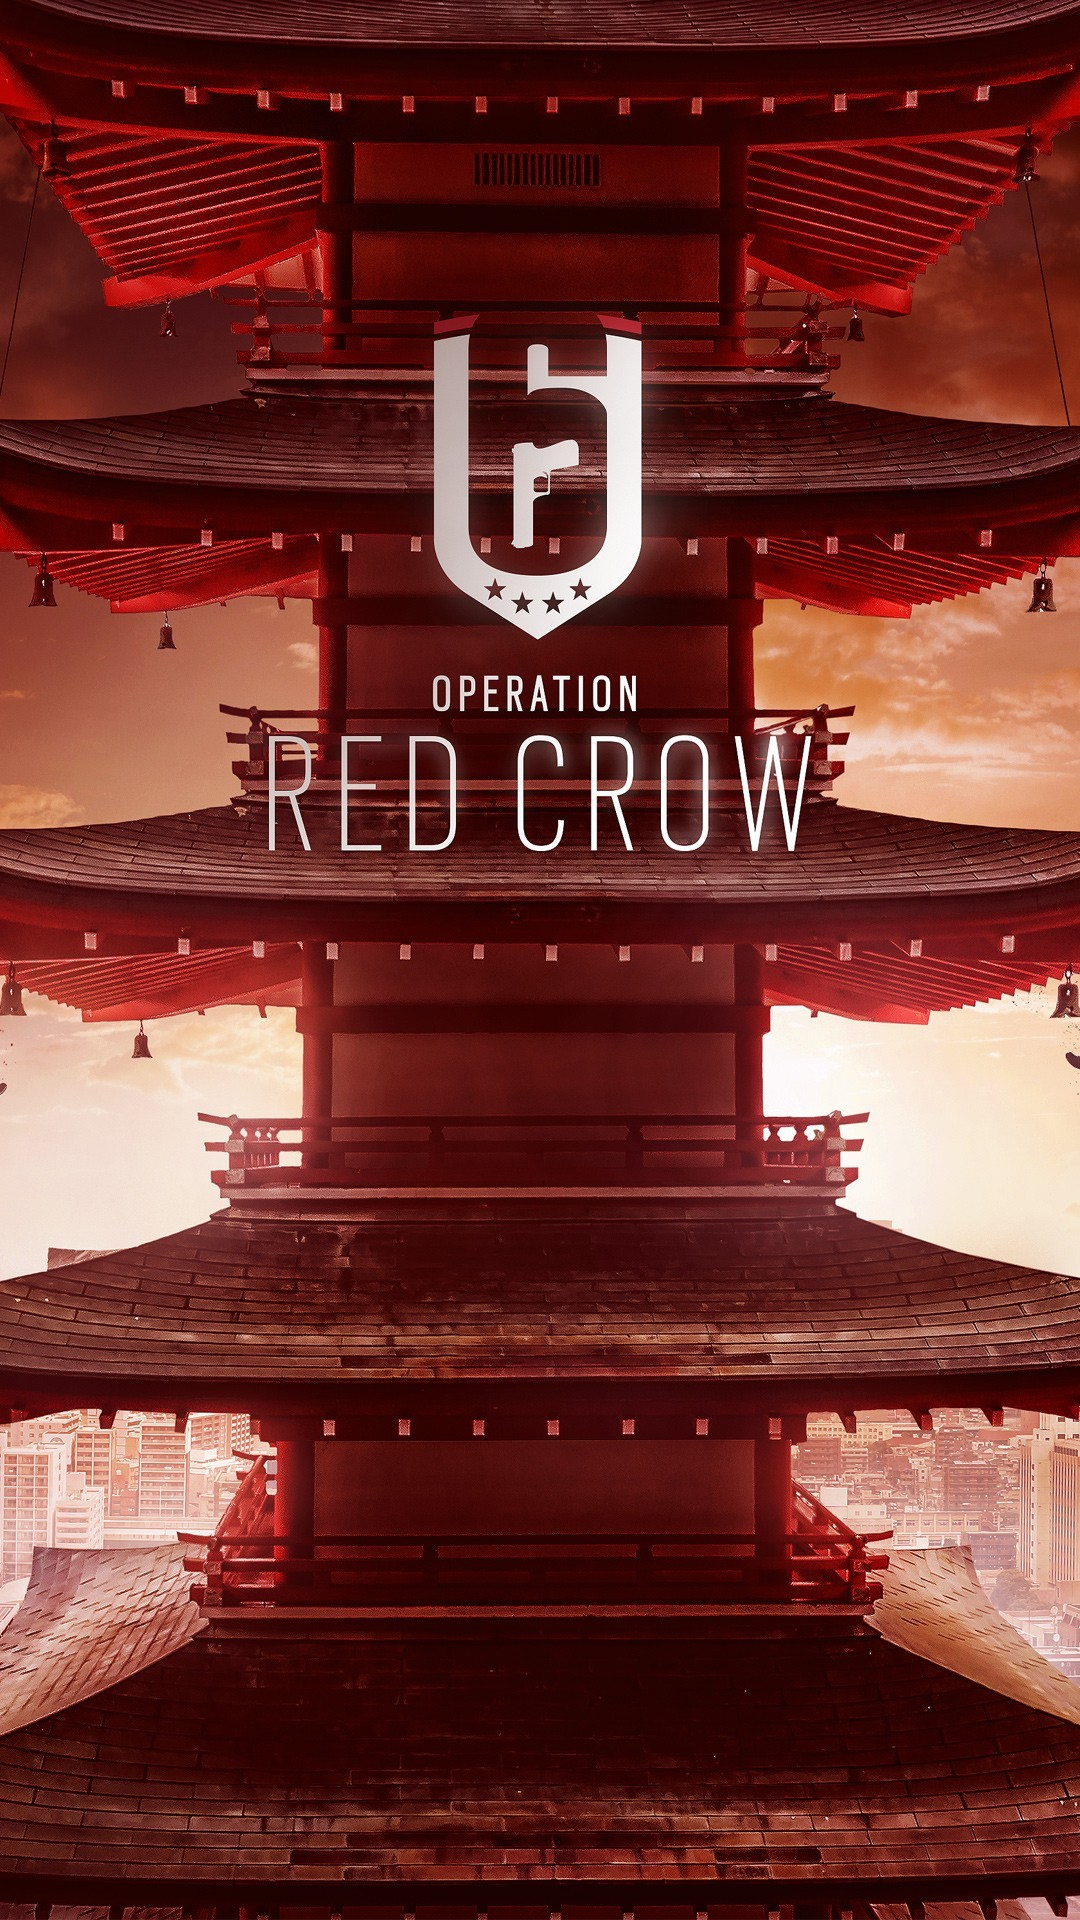 Free Tom Clancys Rainbow Six Siege Operation Red Crow phone wallpaper by clizhawaii